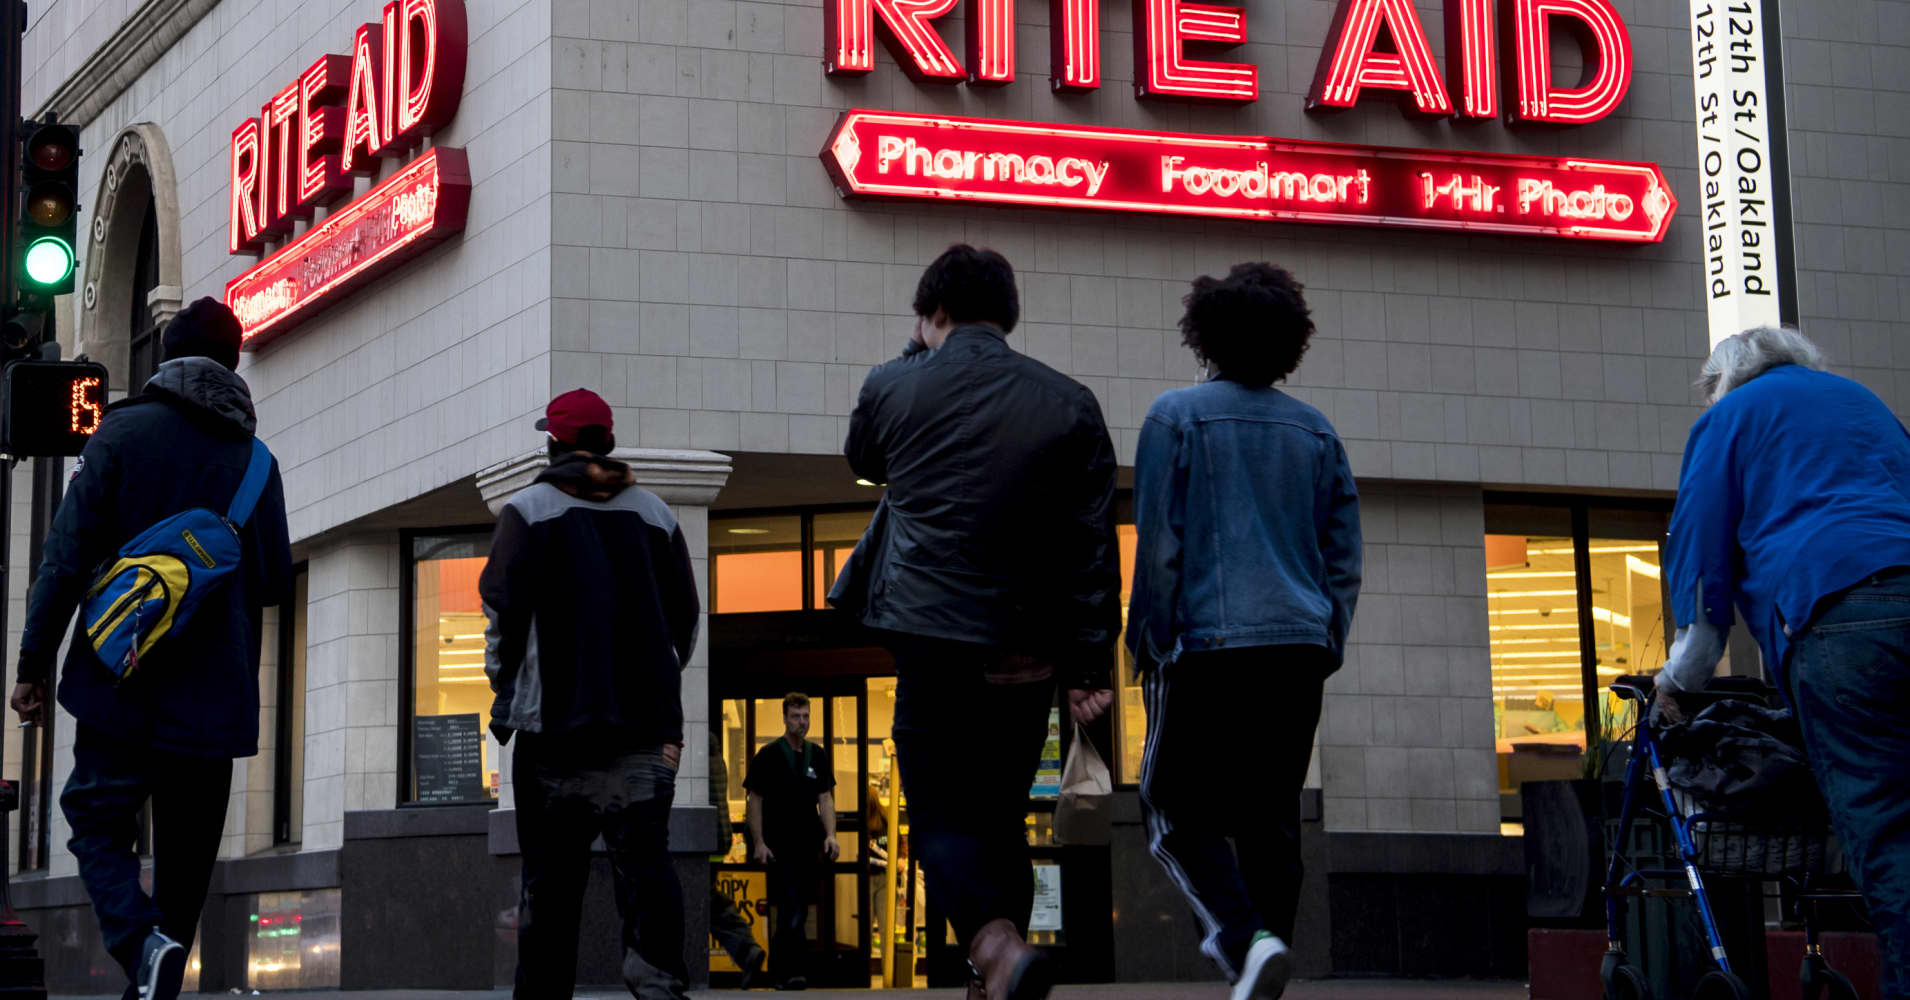 Rite Aid posts a mixed fourth quarter, gives weak full-year forecast